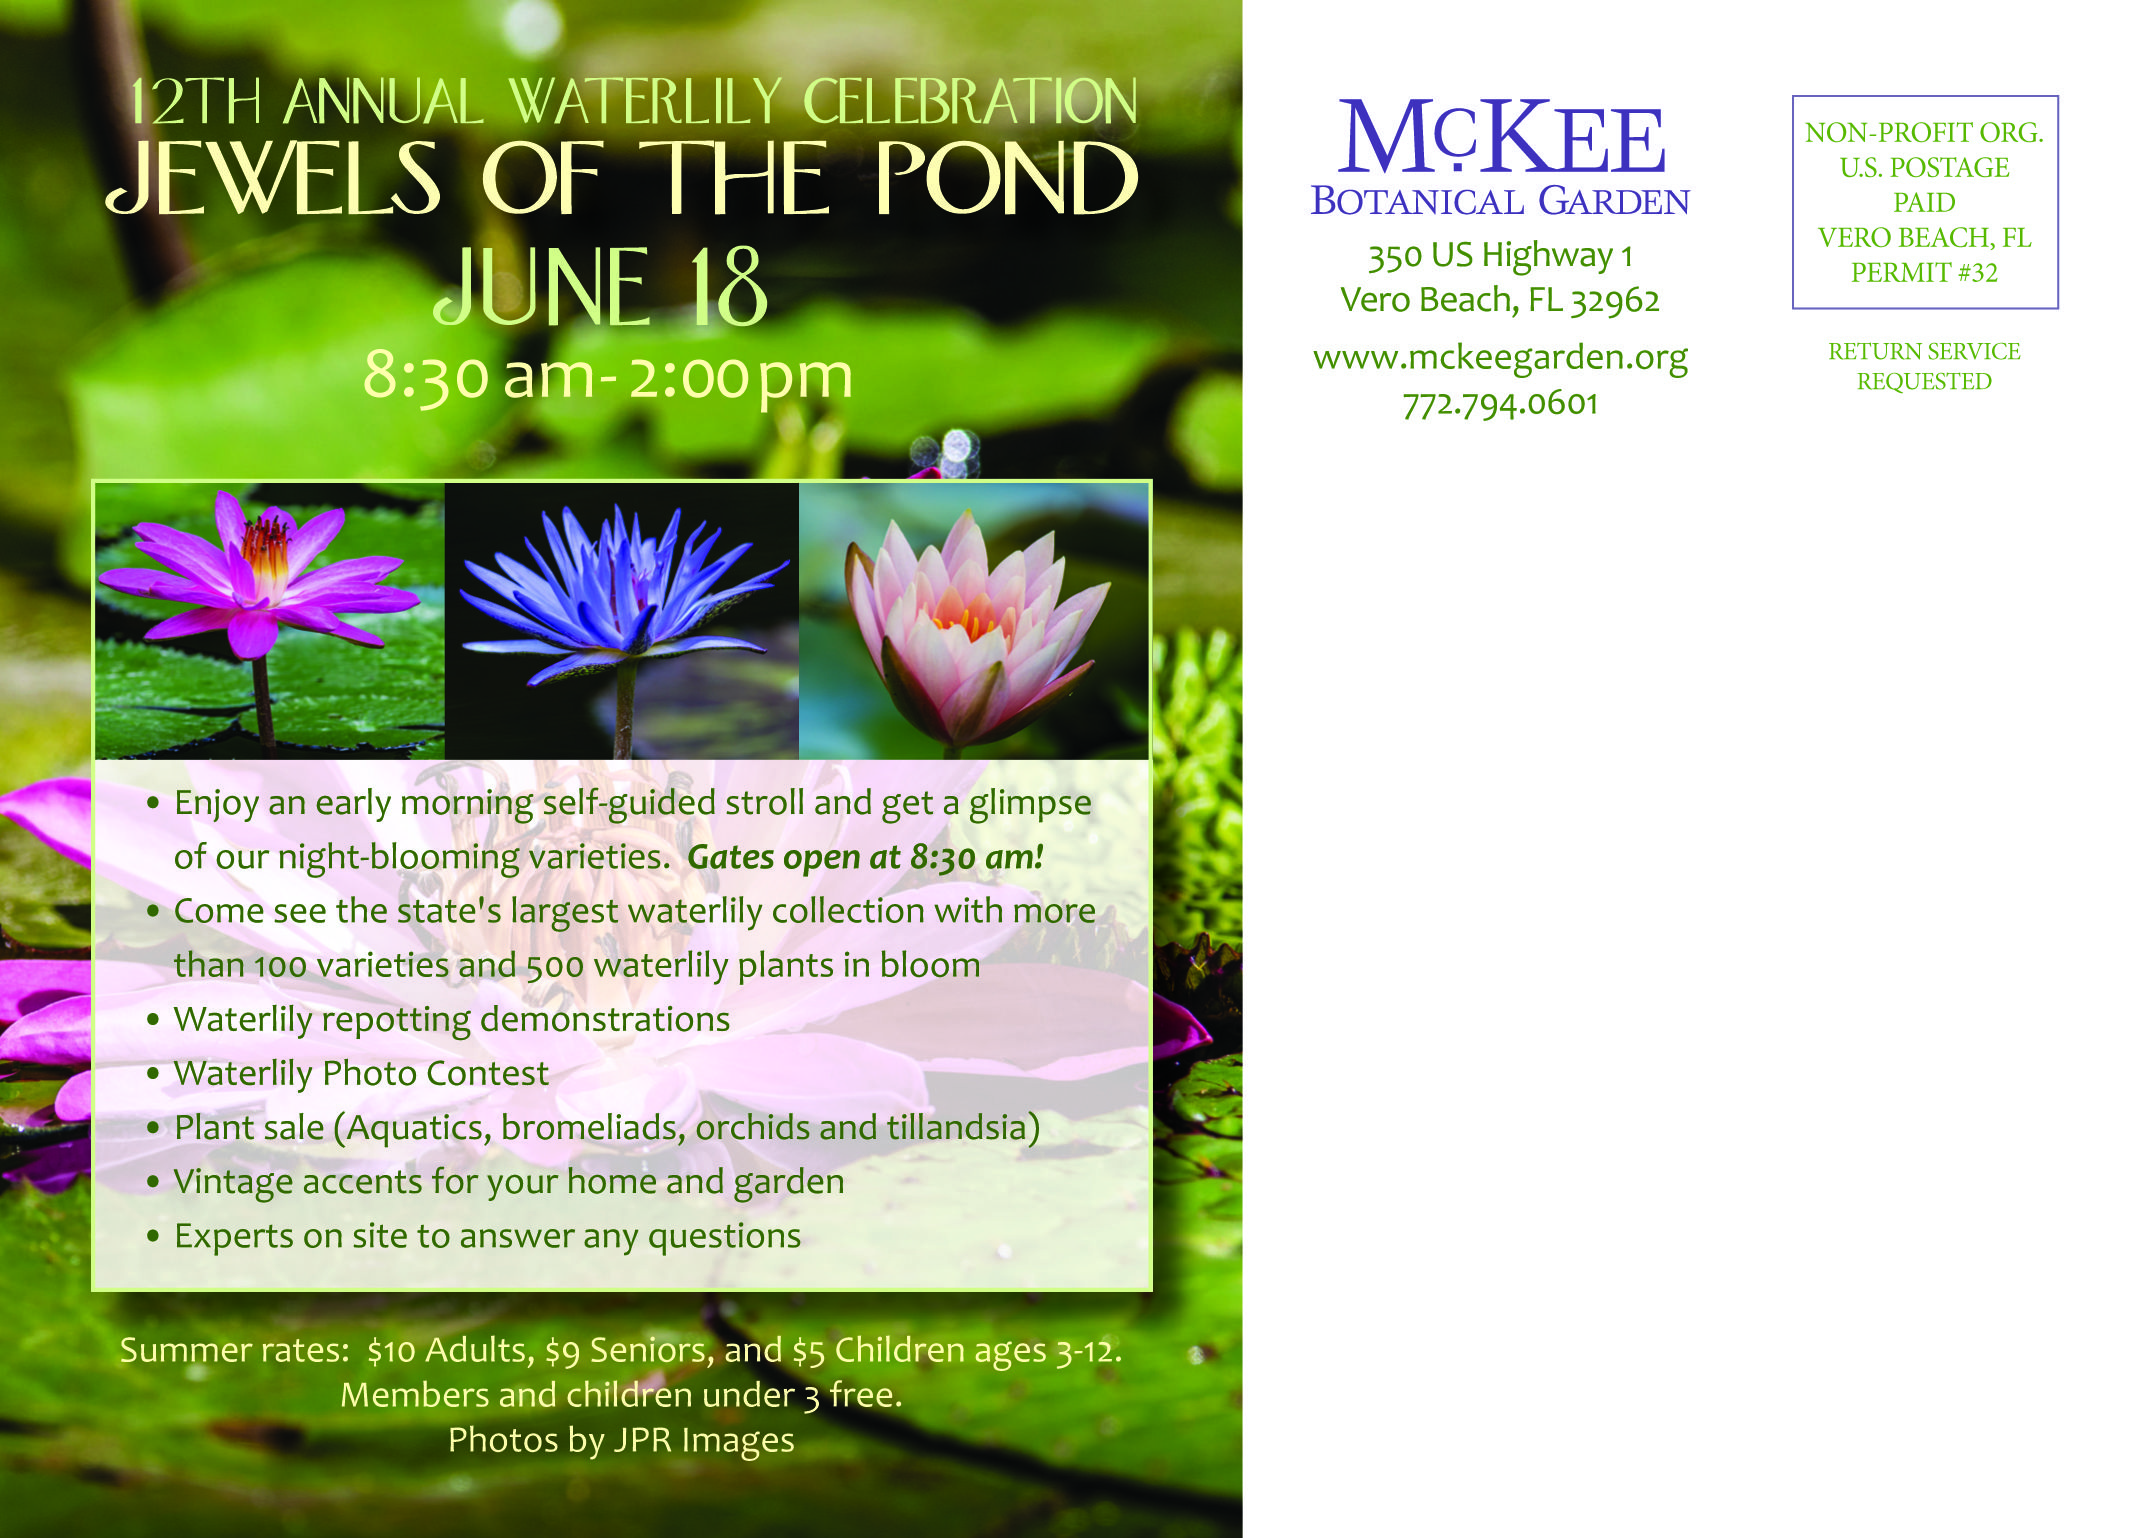 www.mckeegarden.org | Holidays and Special Events | Pinterest